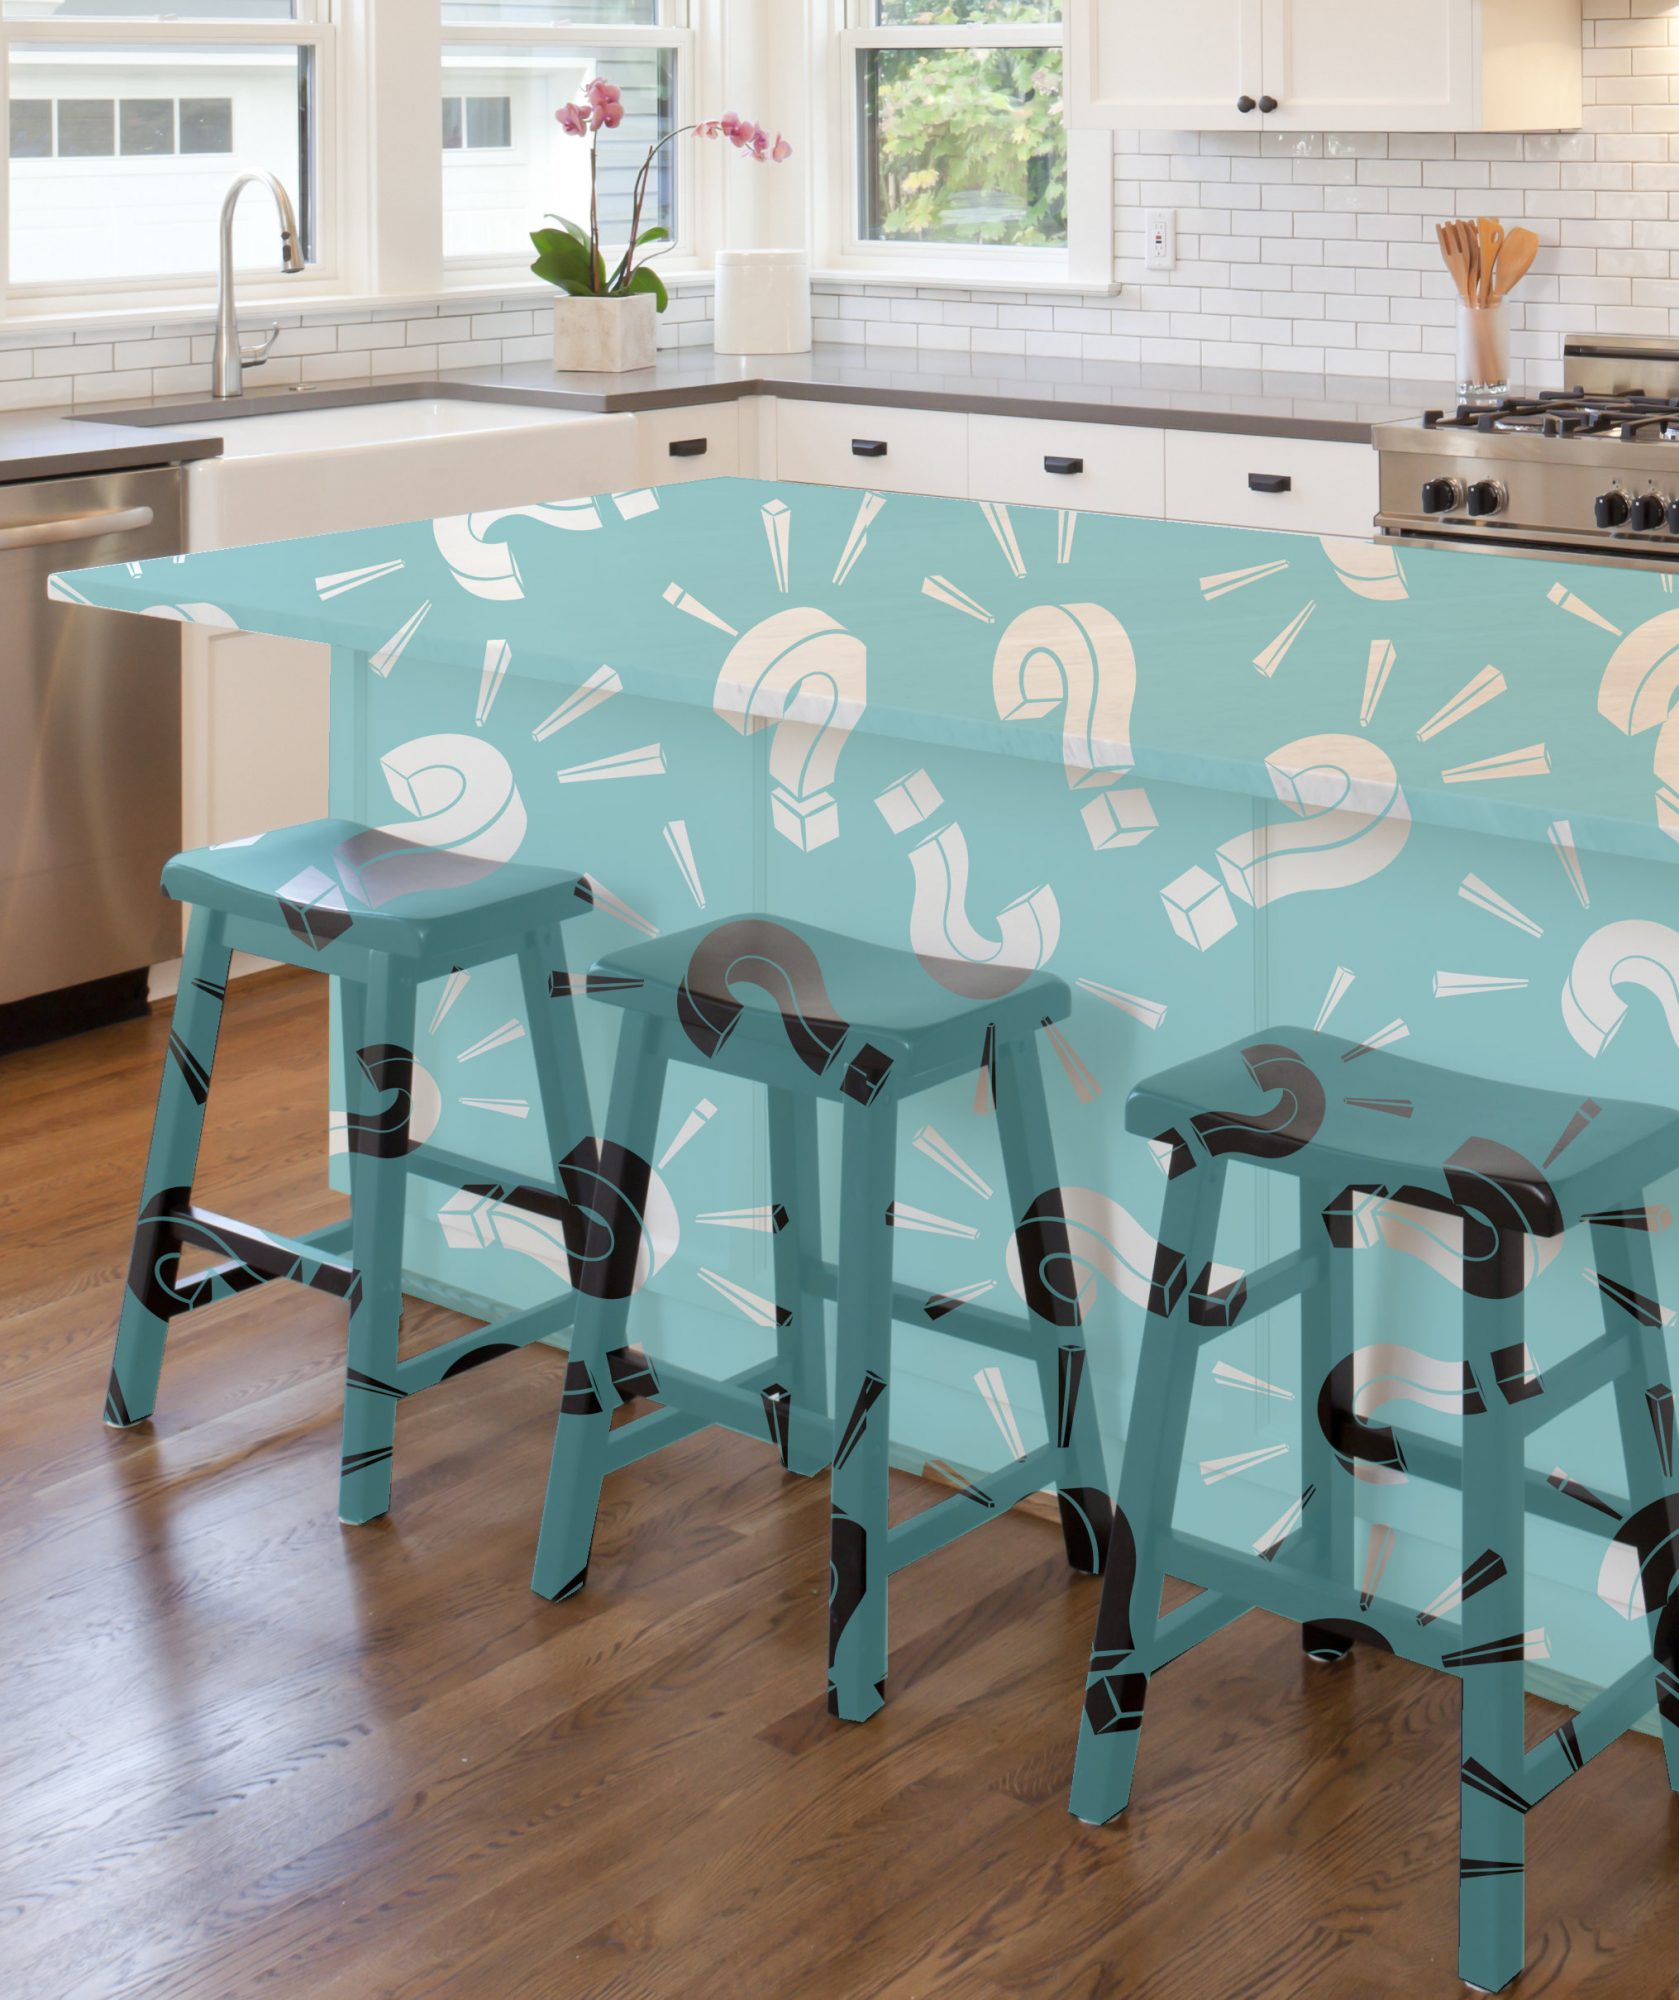 The Kitchen Island Trend You Probably Haven't Seen Before